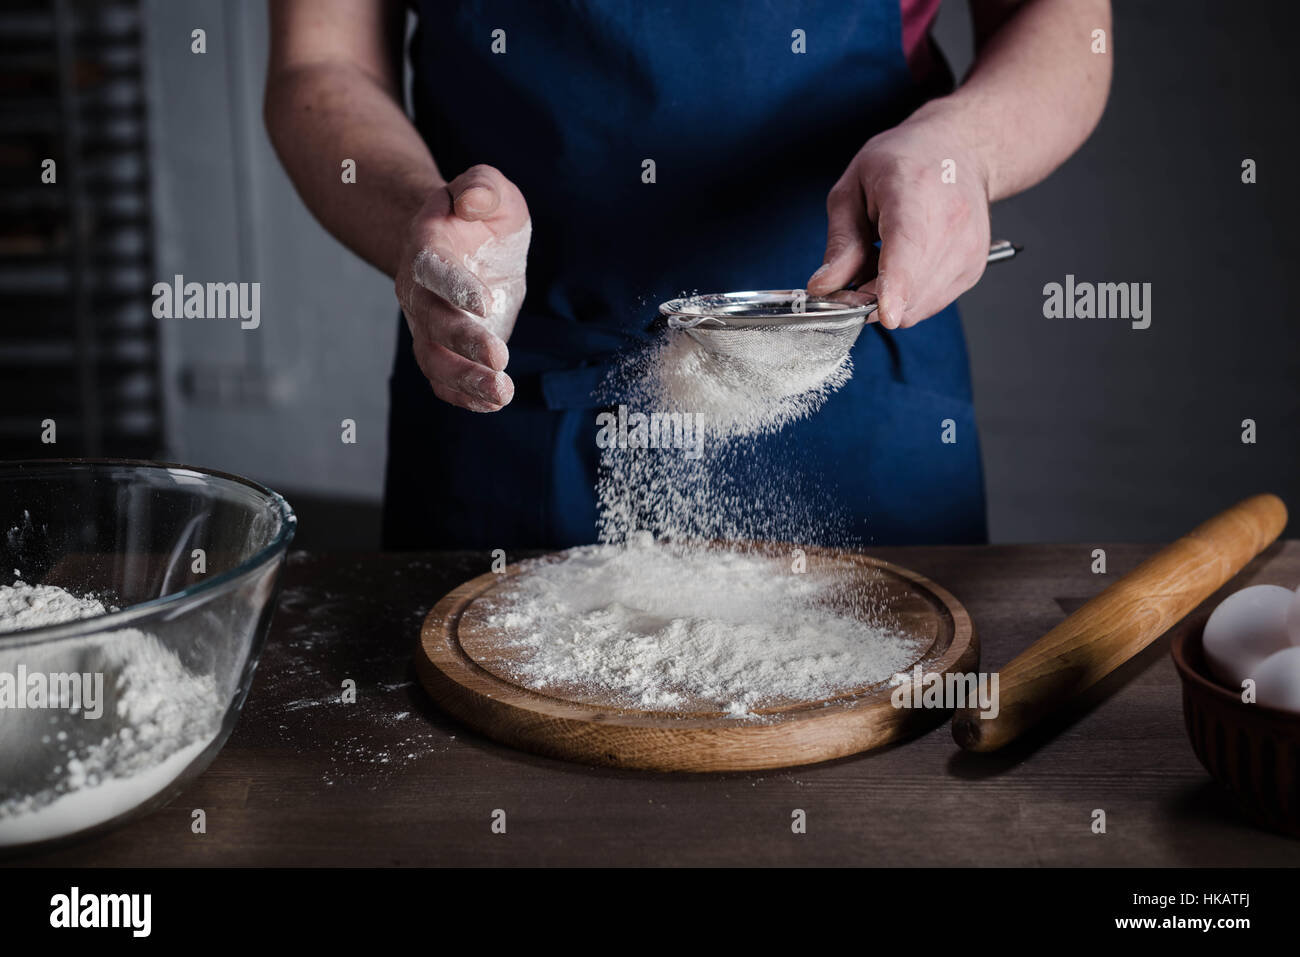 Baker sifting flour in the bakery, cropped shot - Stock Image